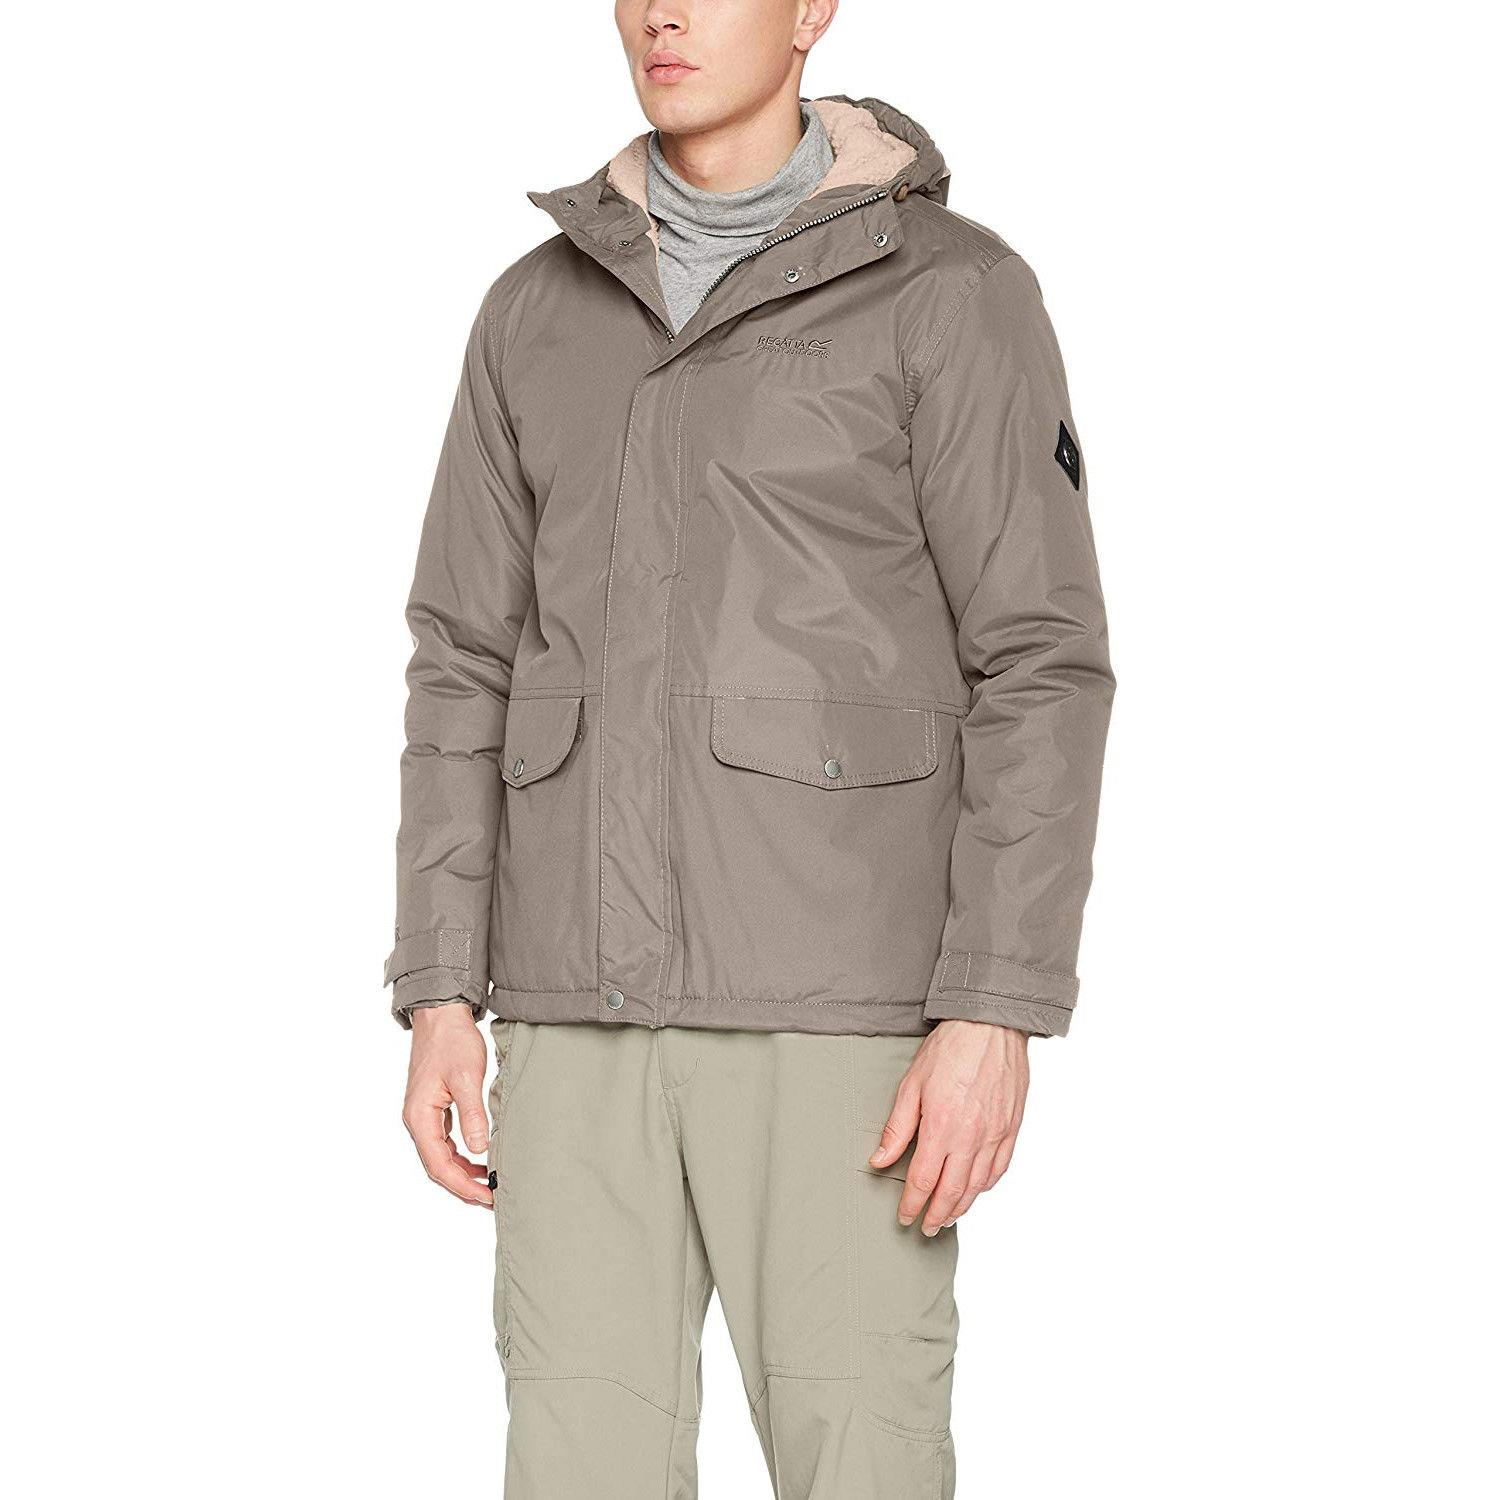 Regatta-Mens-Sternway-II-Waterproof-Hydrafort-Durable-Walking-Jacket-RRP-90 thumbnail 6